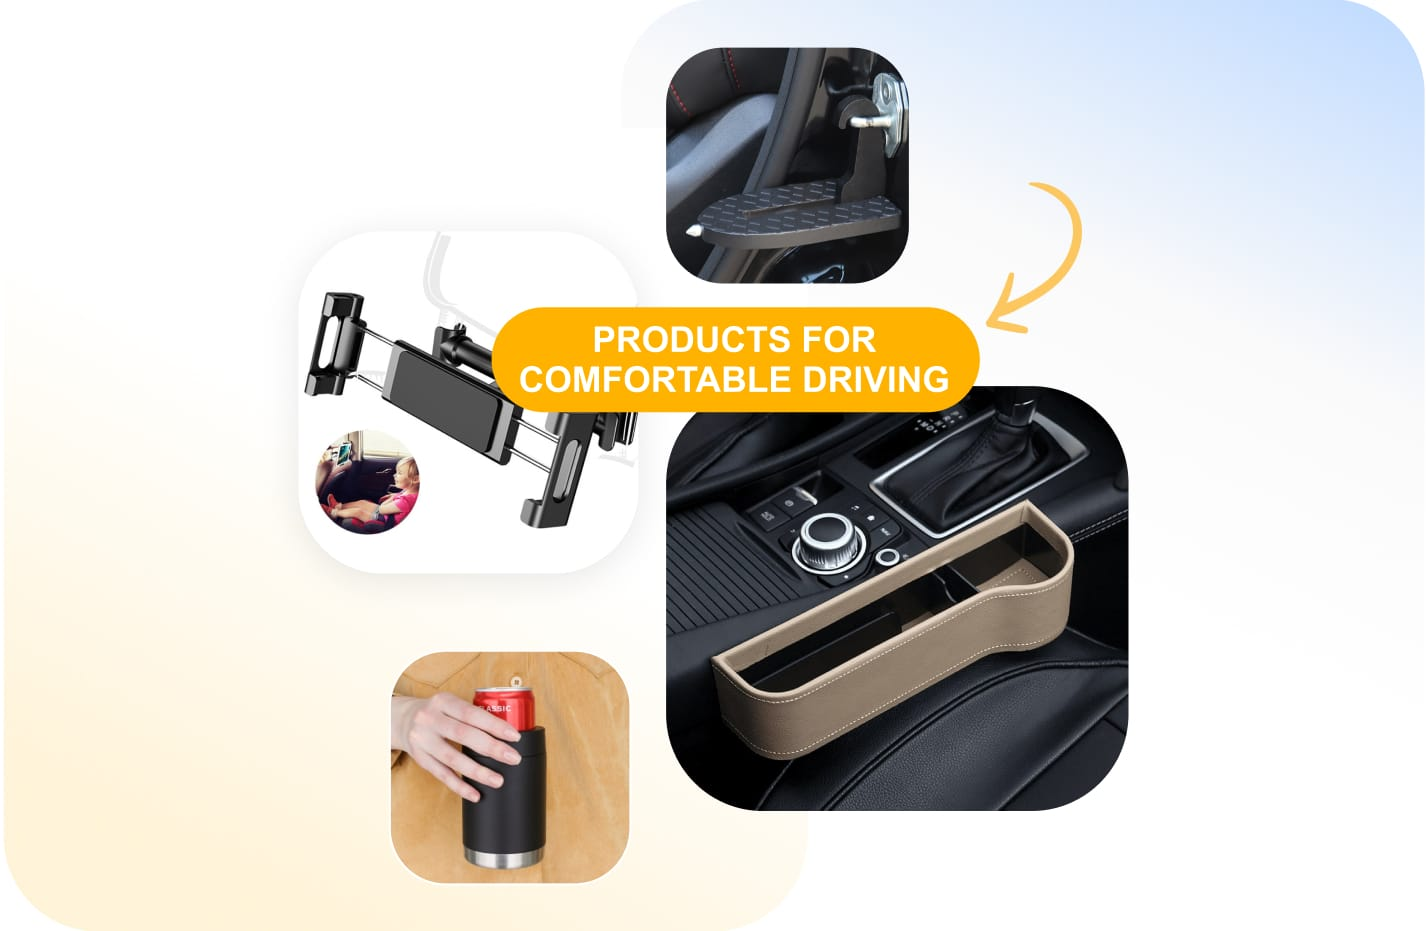 Products for comfortable driving you can resell from Sellvia